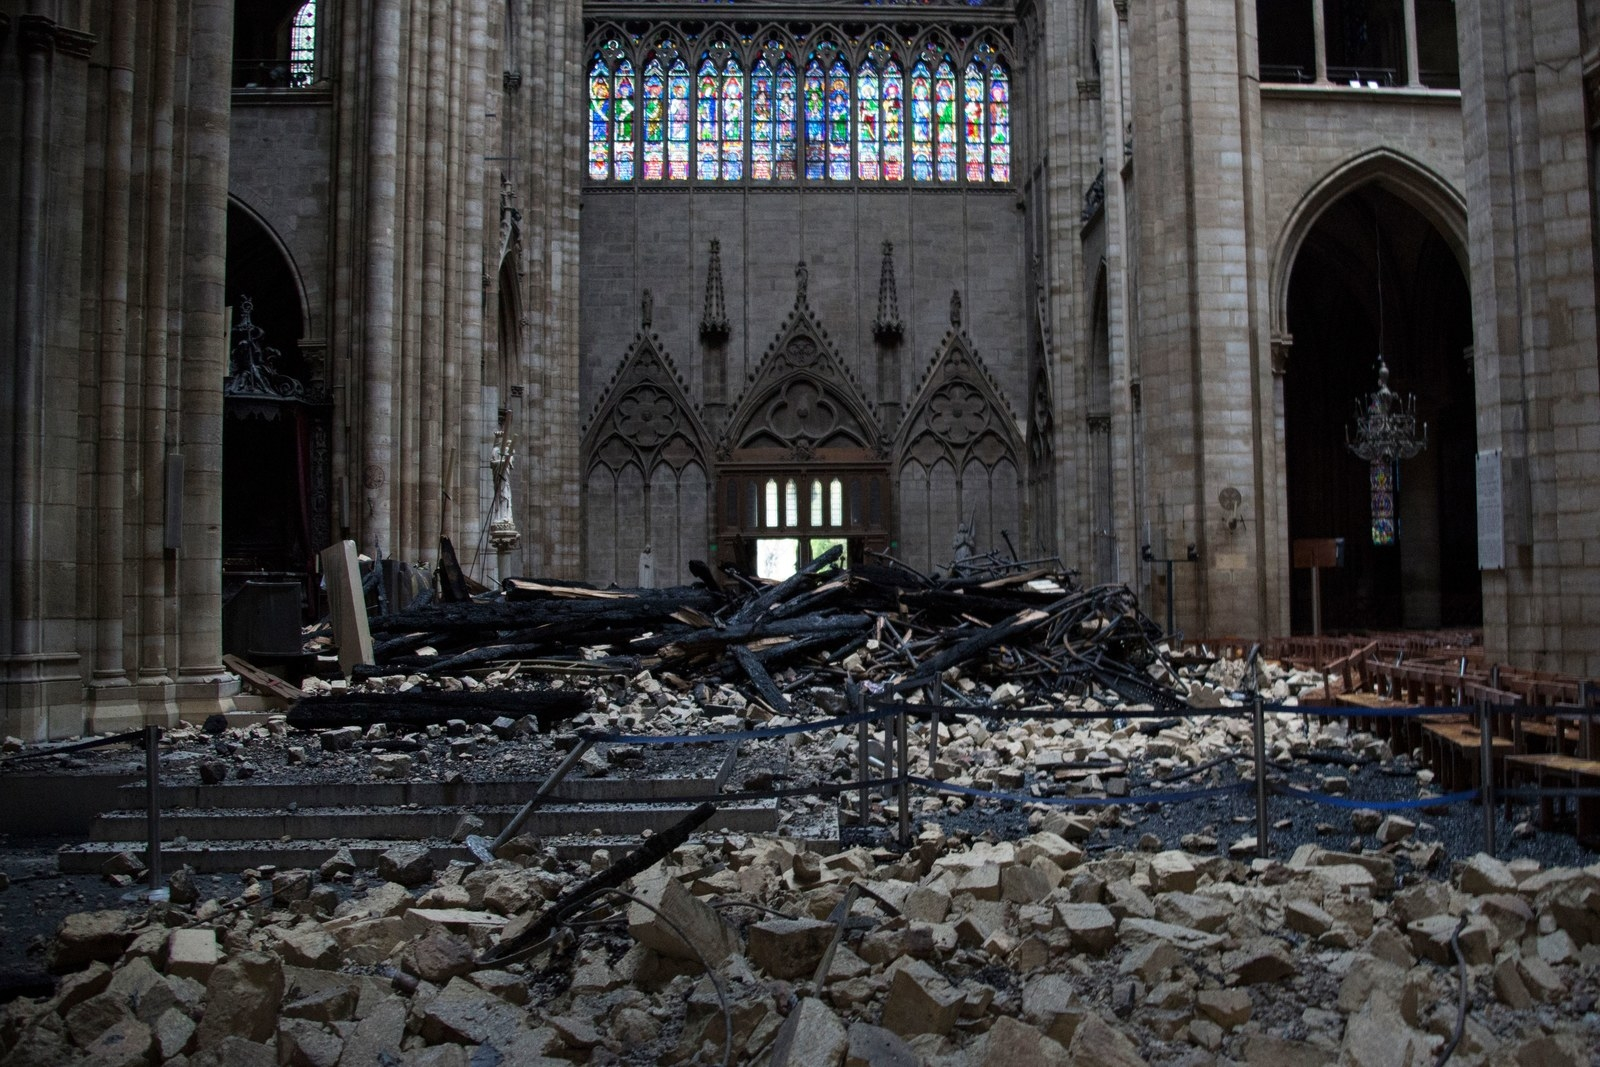 Notre Dame Cathedral Fire Was Detected 23 Minutes After The First Fire Alarm Went Off